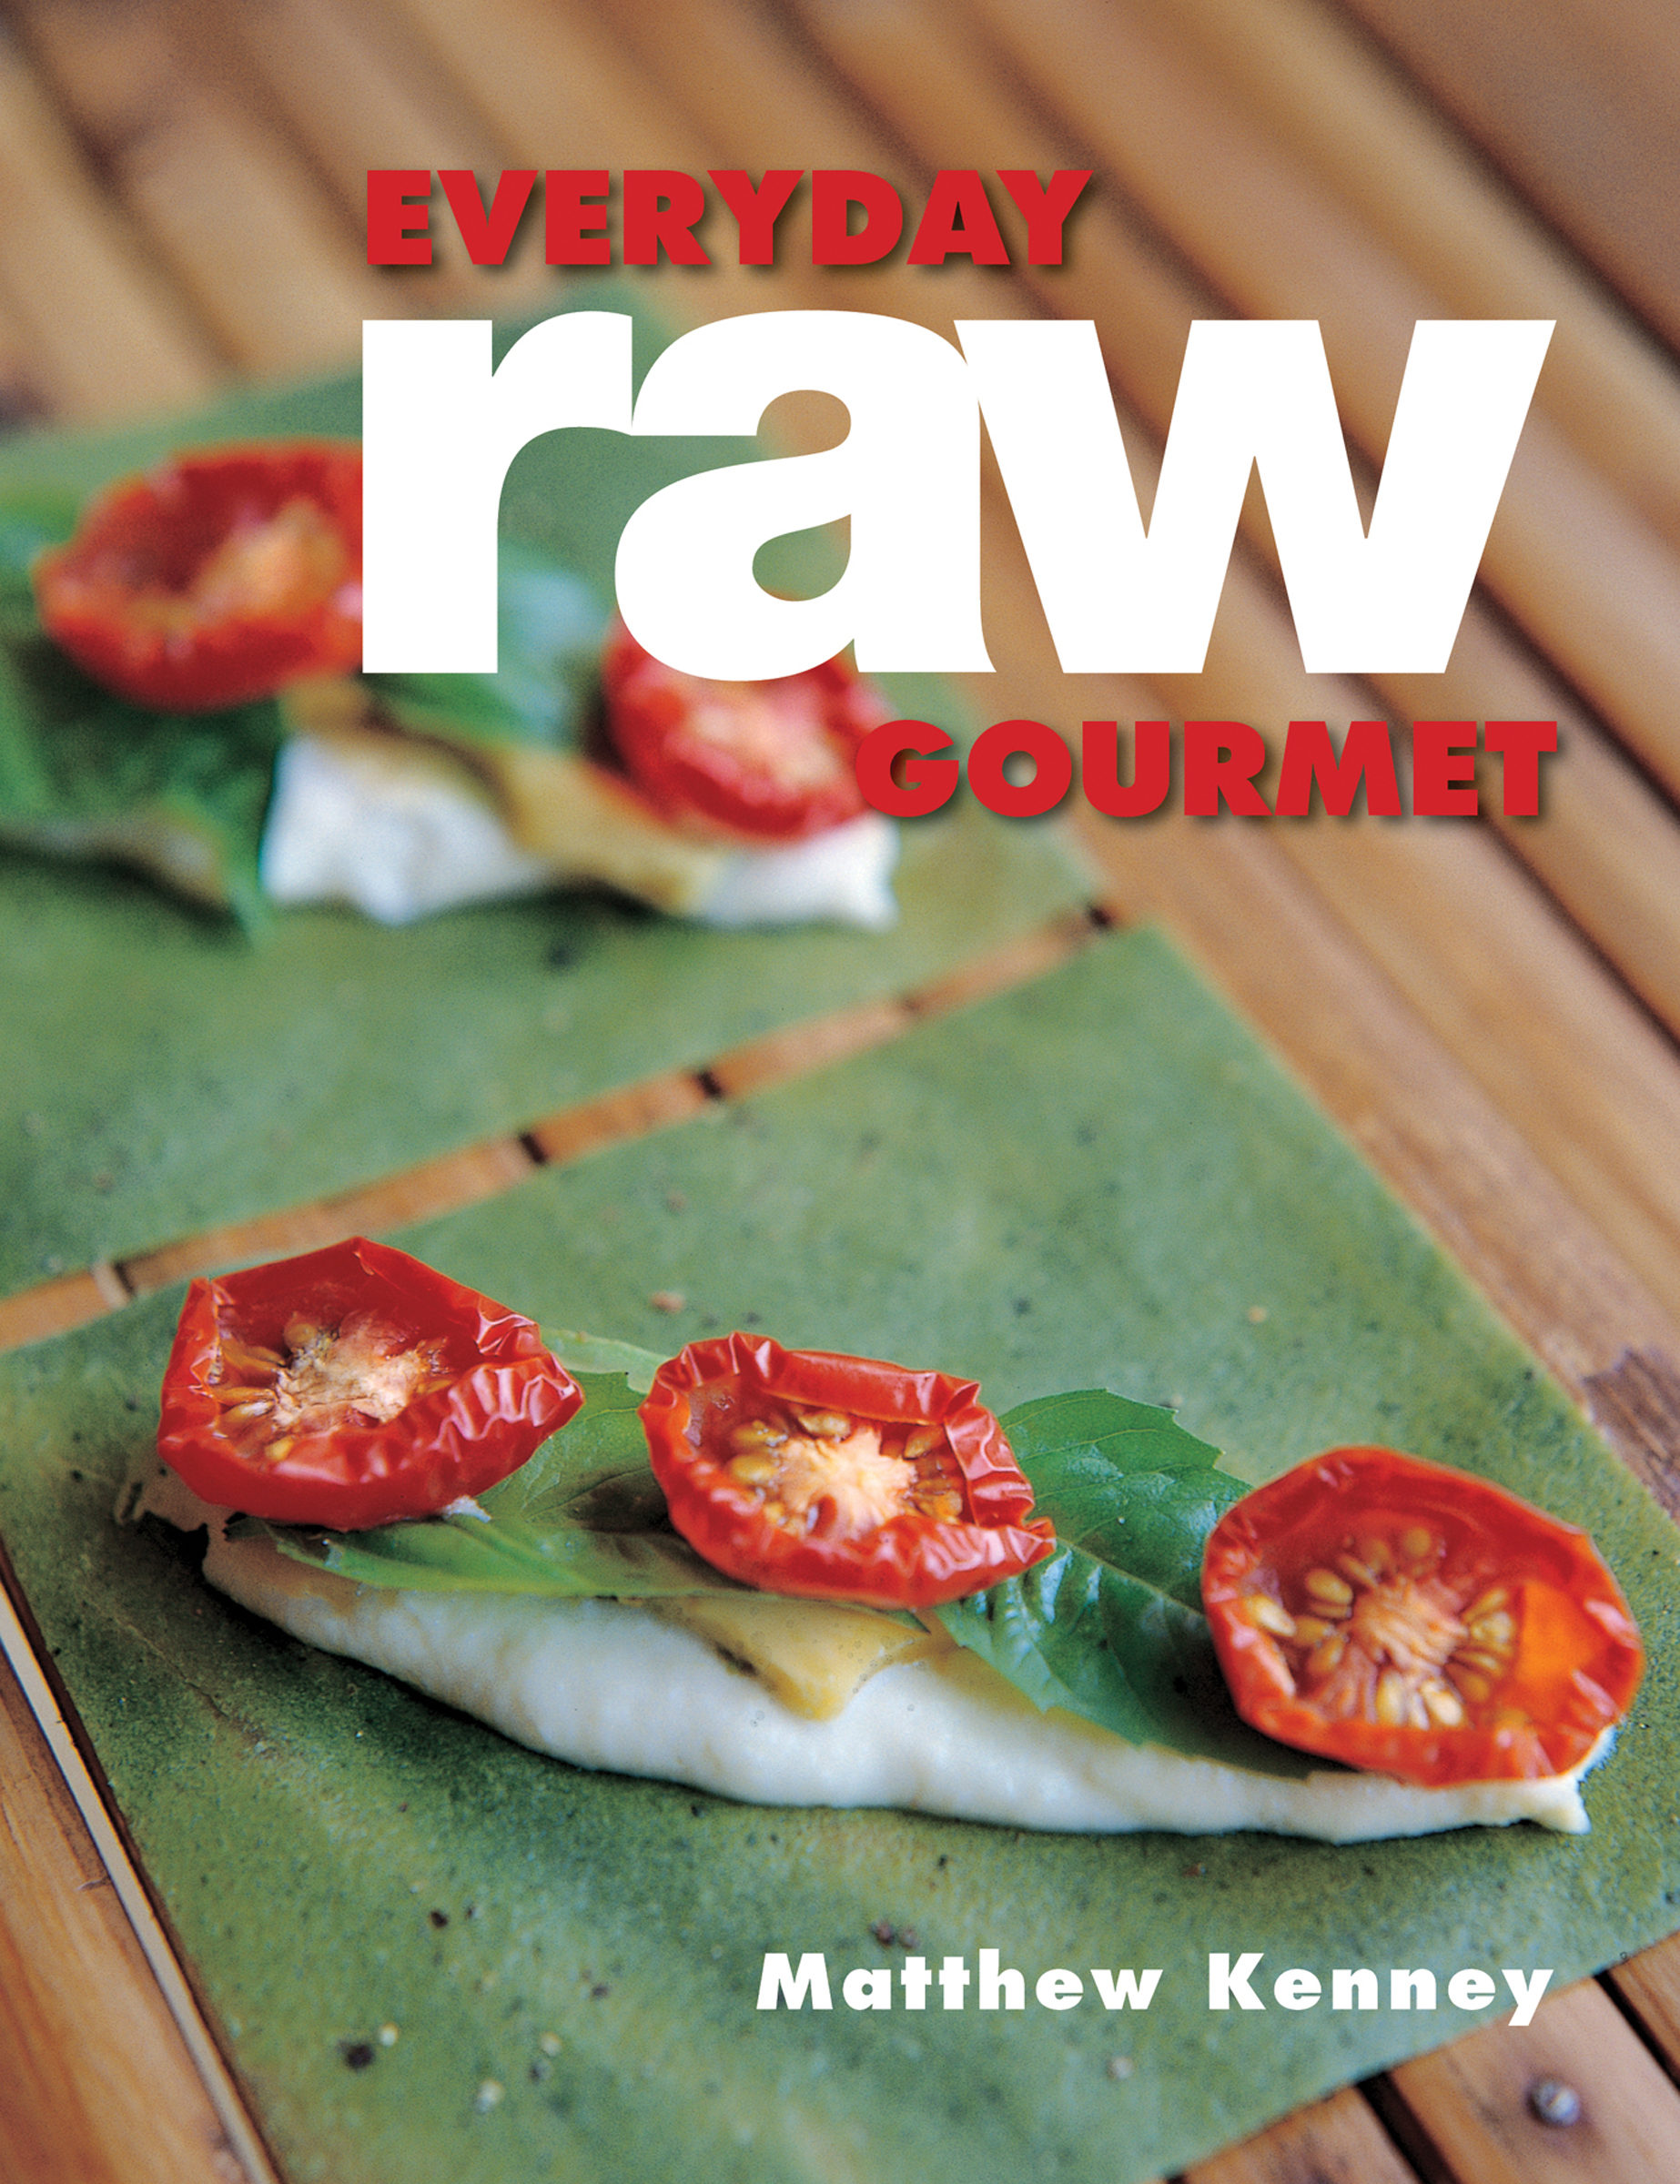 Everyday raw gourmet ebook matthew kenney descargar libro pdf o everyday raw gourmet ebook matthew kenney 9781423635604 forumfinder Image collections